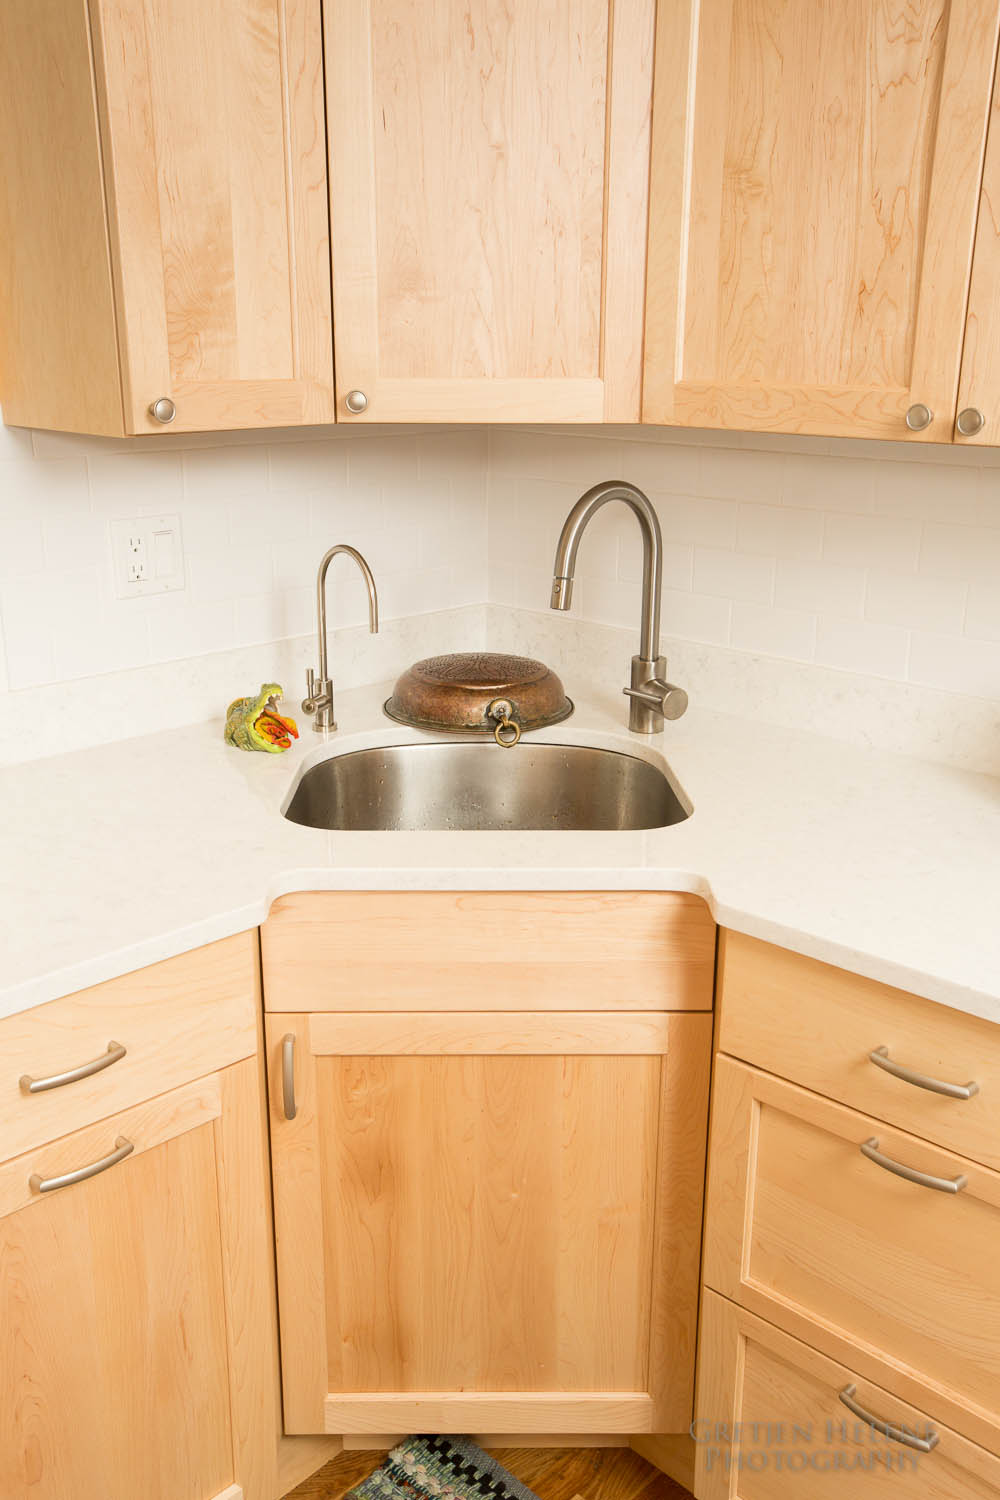 Quartz counter material with an undermount sink